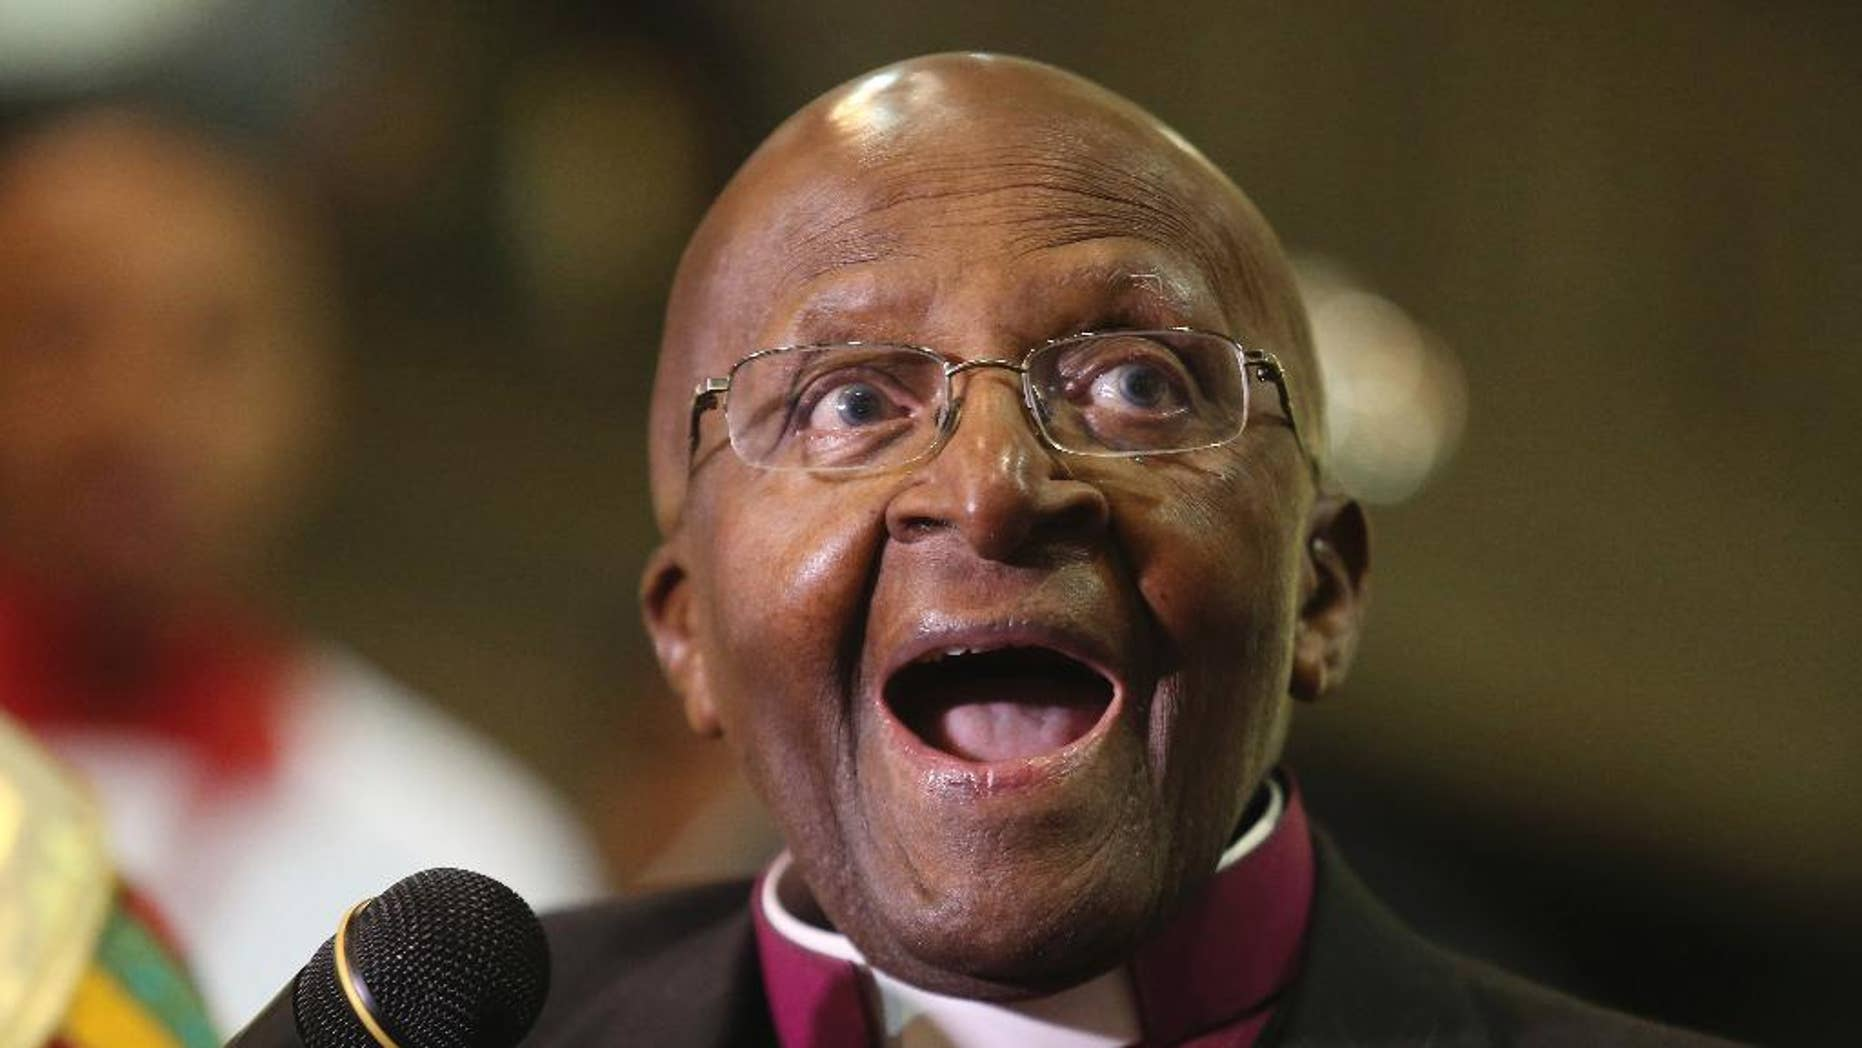 """FILE - In this July 2016 file photo, Anglican Archbishop Emeritus Desmond Tutu takes part in a Mass to celebrate four decades of episcopal ministry at a special thanksgiving Mass at St Mary's Cathedral in Johannesburg. Nobel laureate Desmond Tutu was readmitted to a South African hospital on Saturday, Sept. 17, 2016,  just days after he left following three weeks of treatment there. The 84-year-old retired archbishop returned to the hospital """"as a precaution after his surgical wound had shown signs of infection,"""" a family statement quoted Tutu's wife, Leah, as saying. (AP Photo/Denis Farrell, File)"""